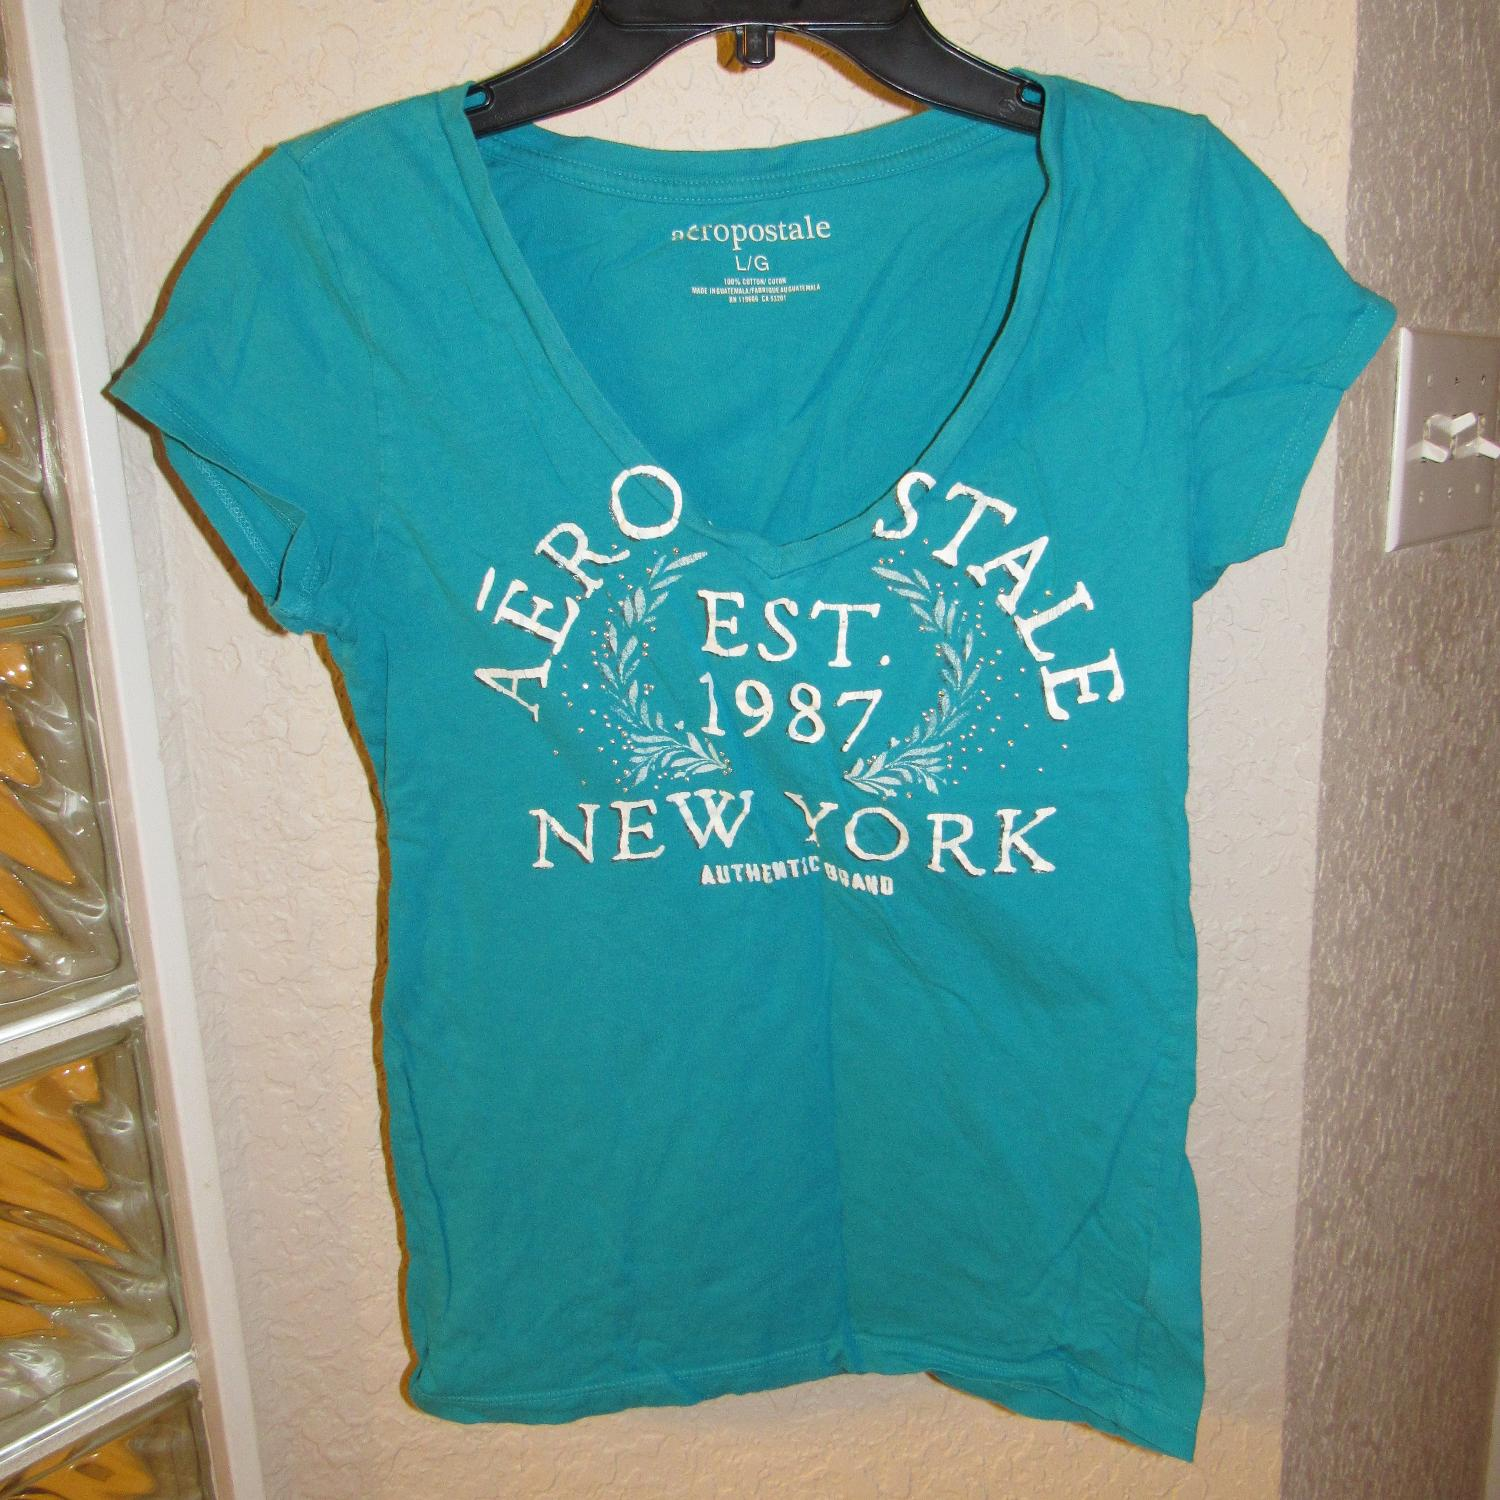 56c93c56 Best Aeropostale Women's T-shirt * Size Large L * Turquoise for sale ...